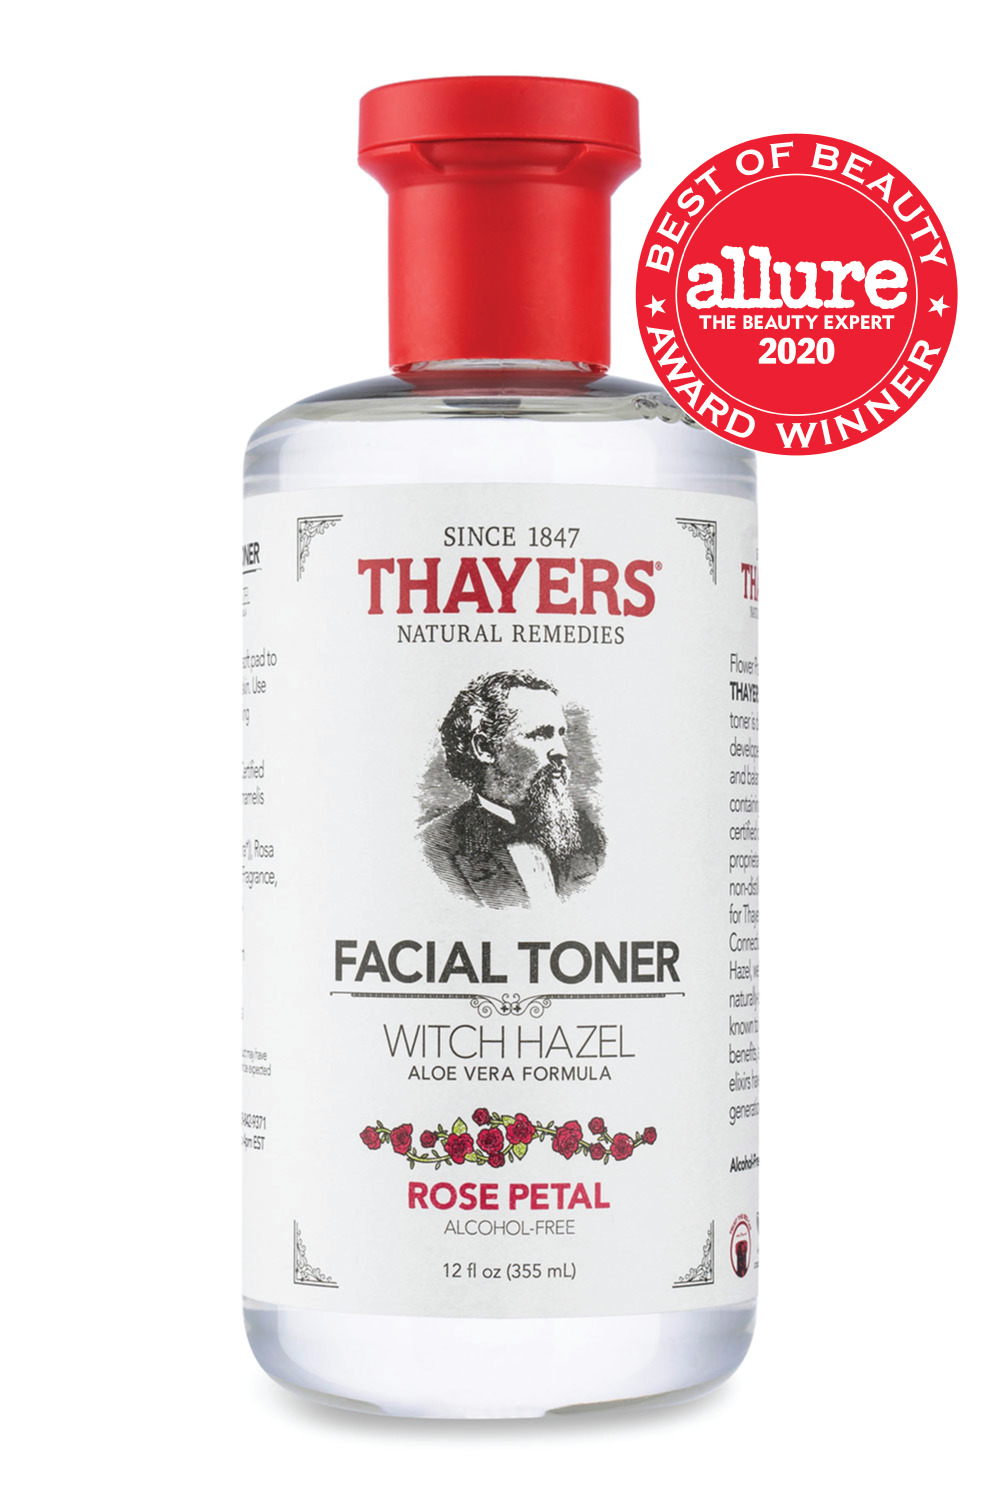 Thayers Alcohol-Free Rose Petal Witch Hazel Facial Toner